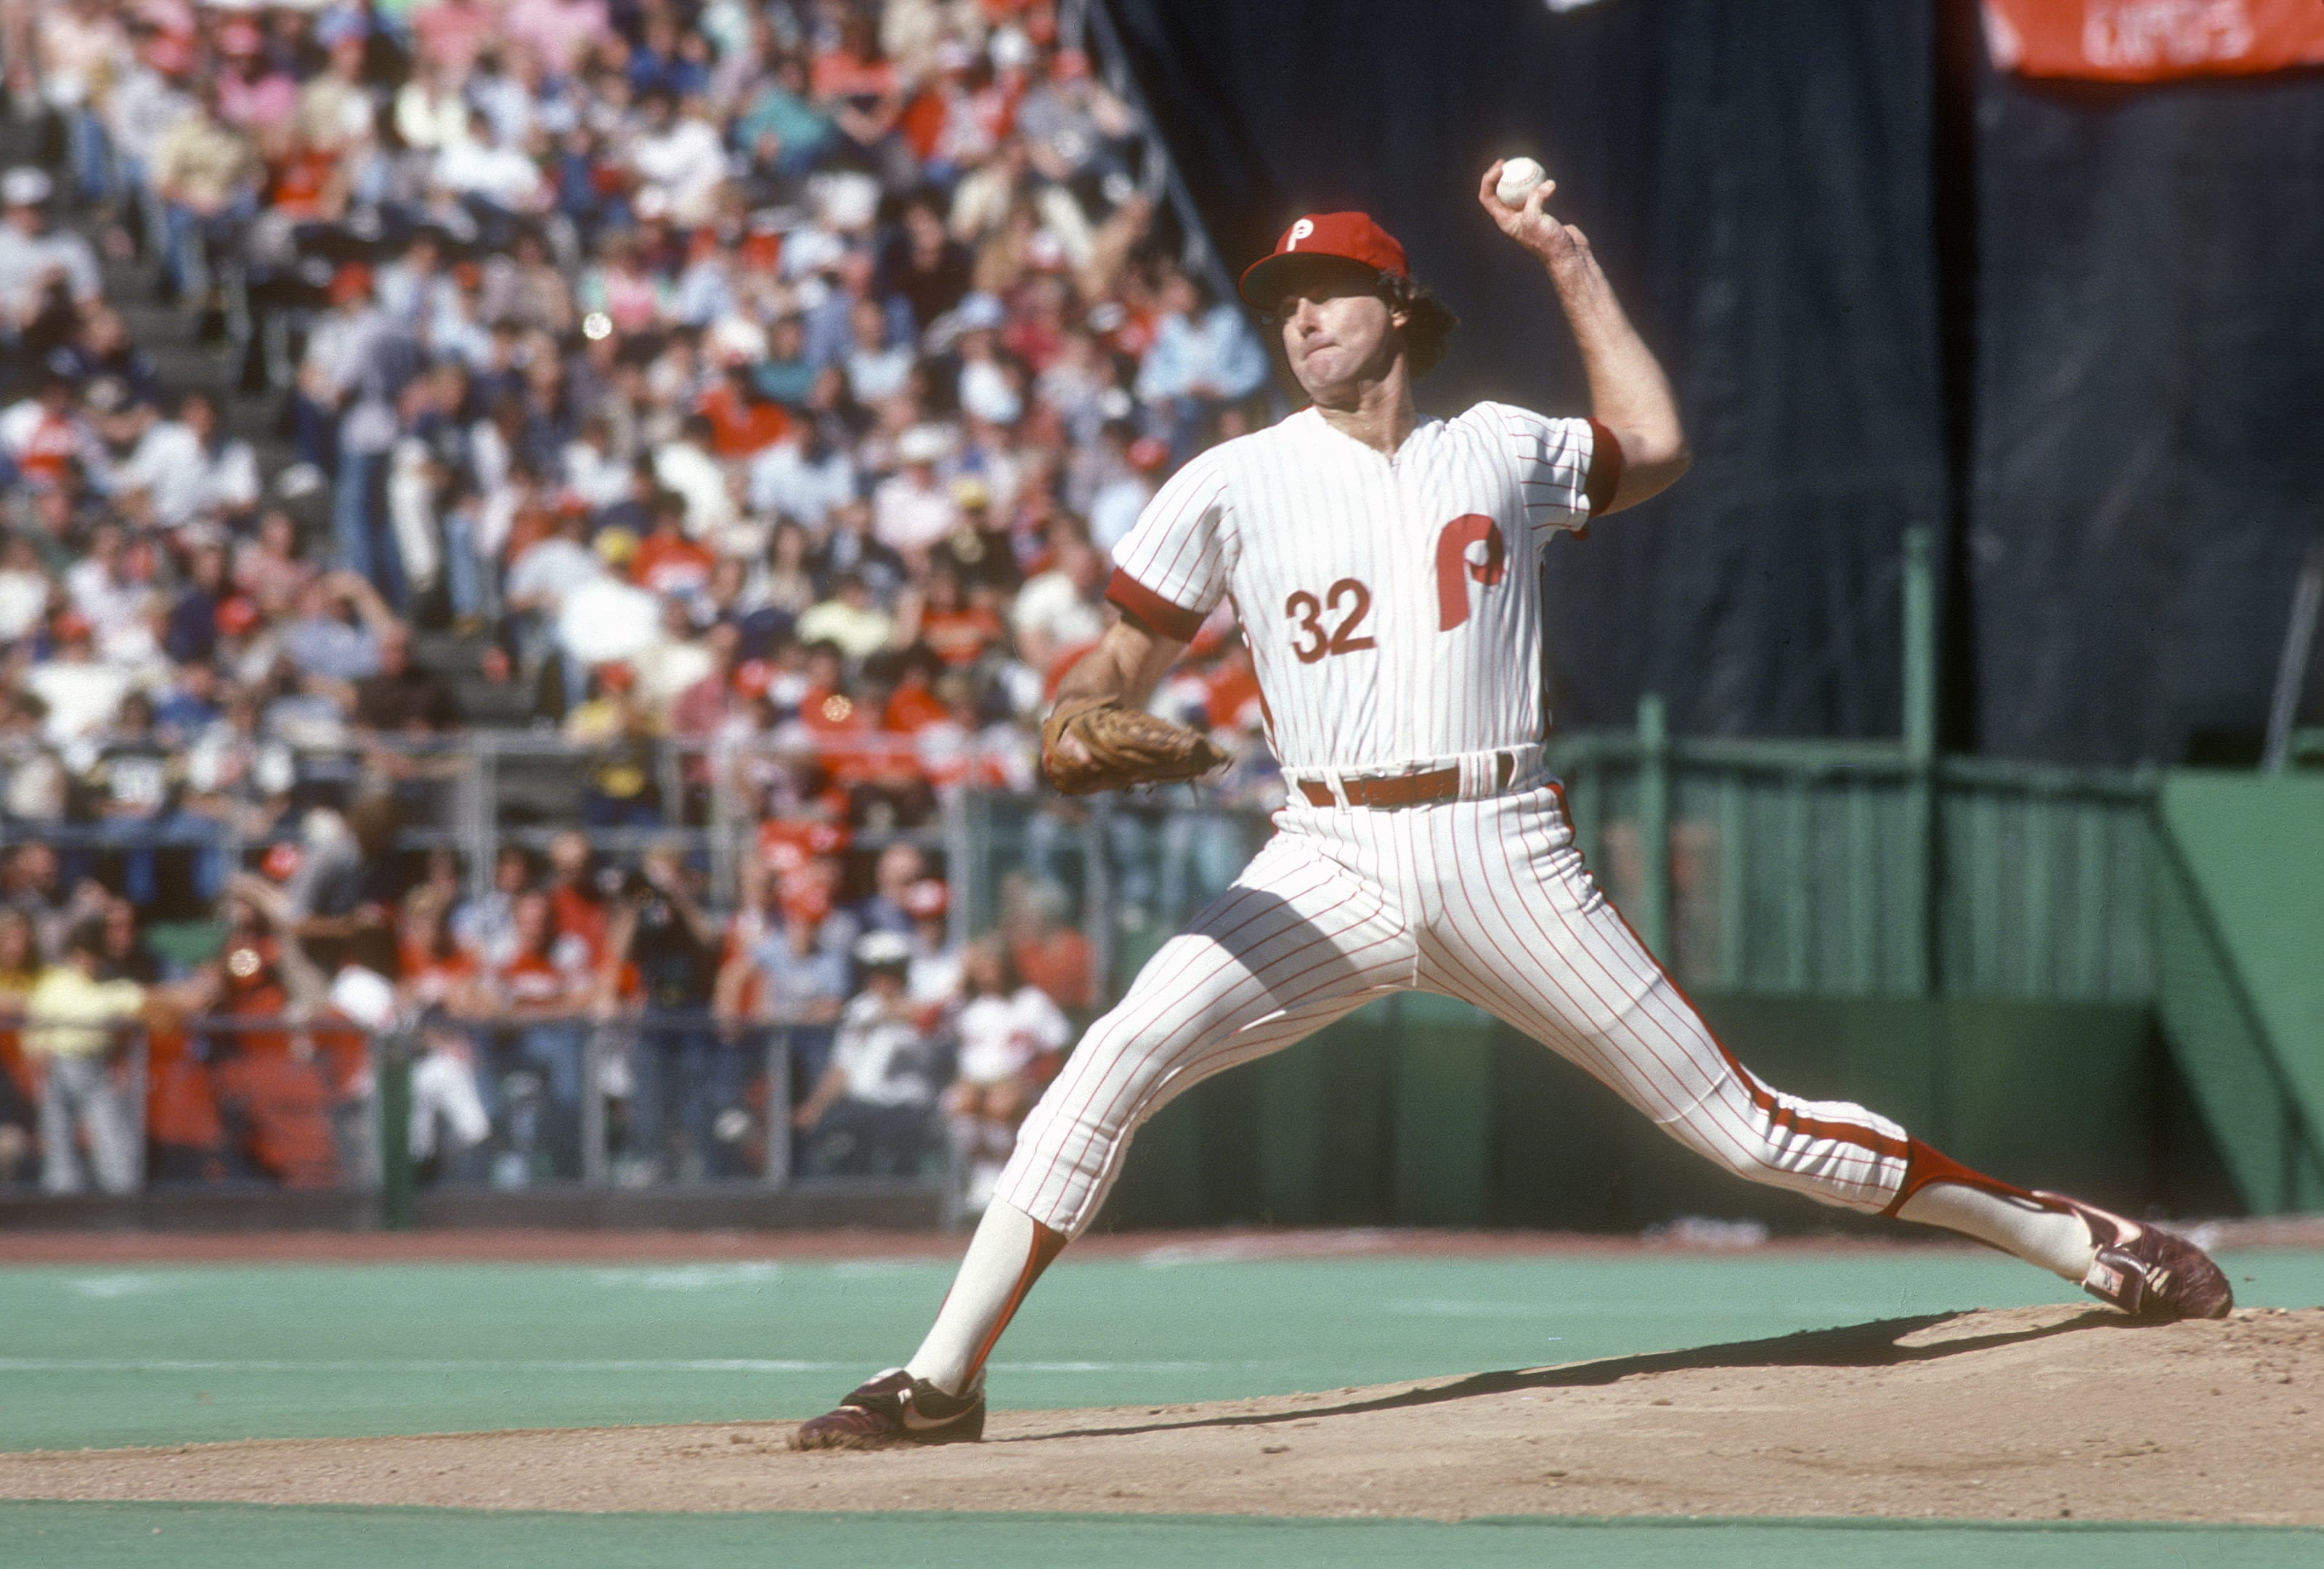 Phillies: Top 5 moments of Steve Carlton's Hall of Fame career